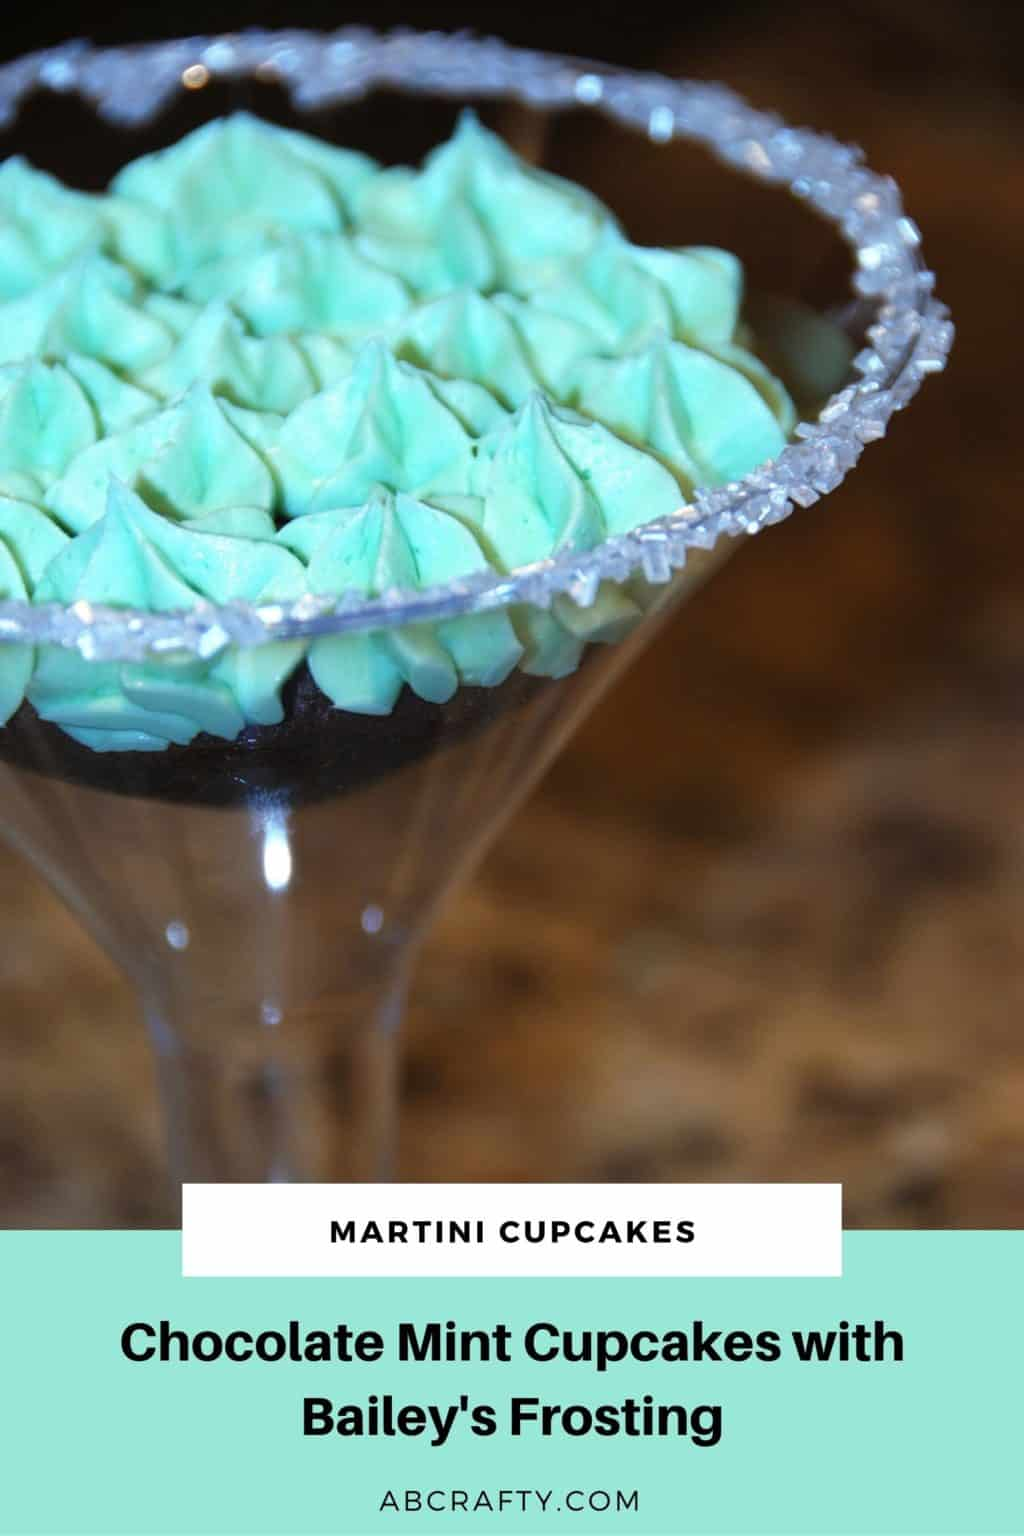 chocolate cupcake with green frosting inside a plastic martini glass with sugar rim. Title reads 'martini cupcakes, chocolate mint cupcakes with bailey's frosting, abcrafty.com'